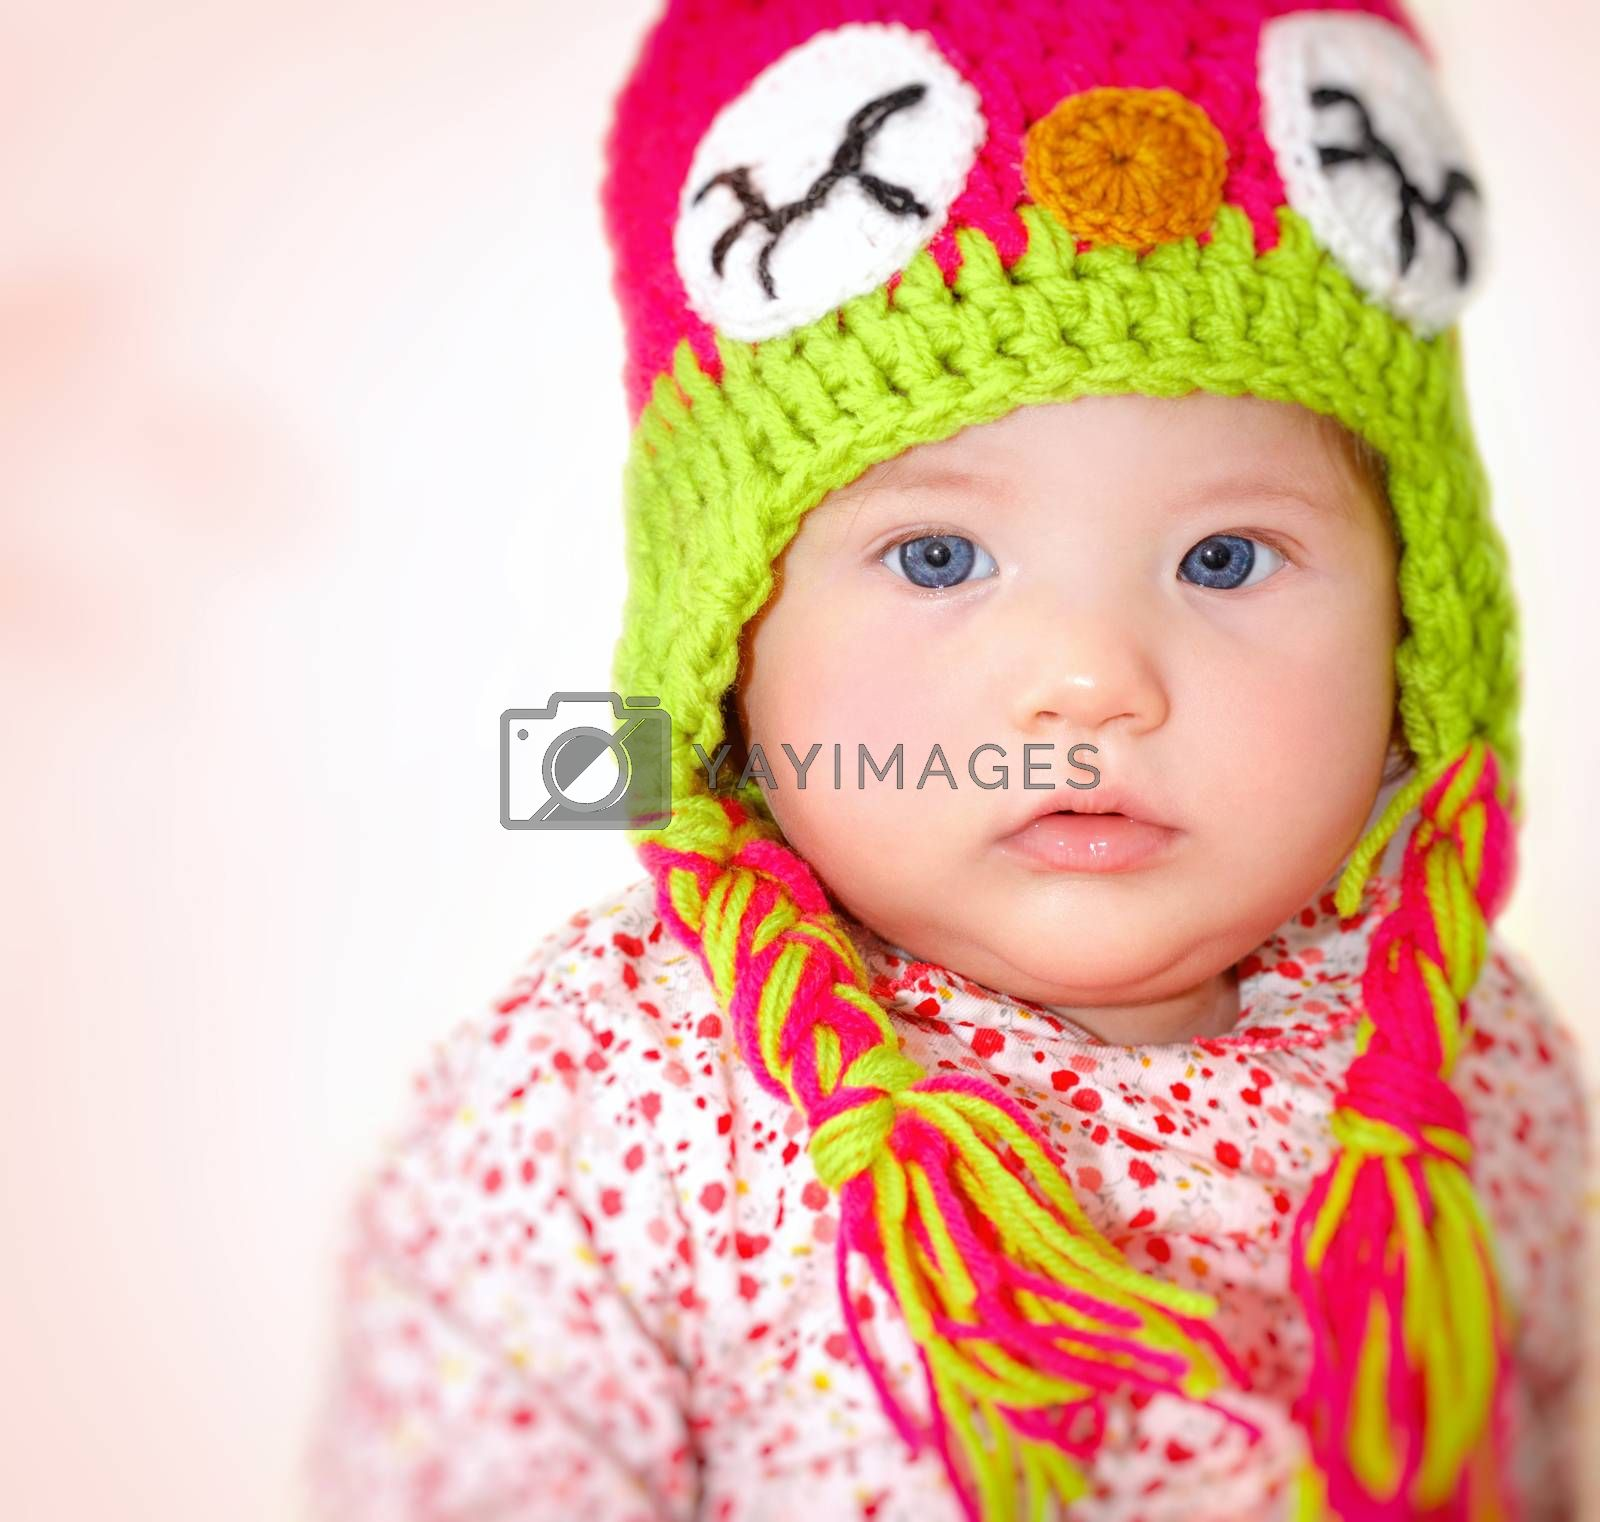 Closeup portrait of adorable child wearing beautiful colorful hat over pink background, cool winter style for little girls